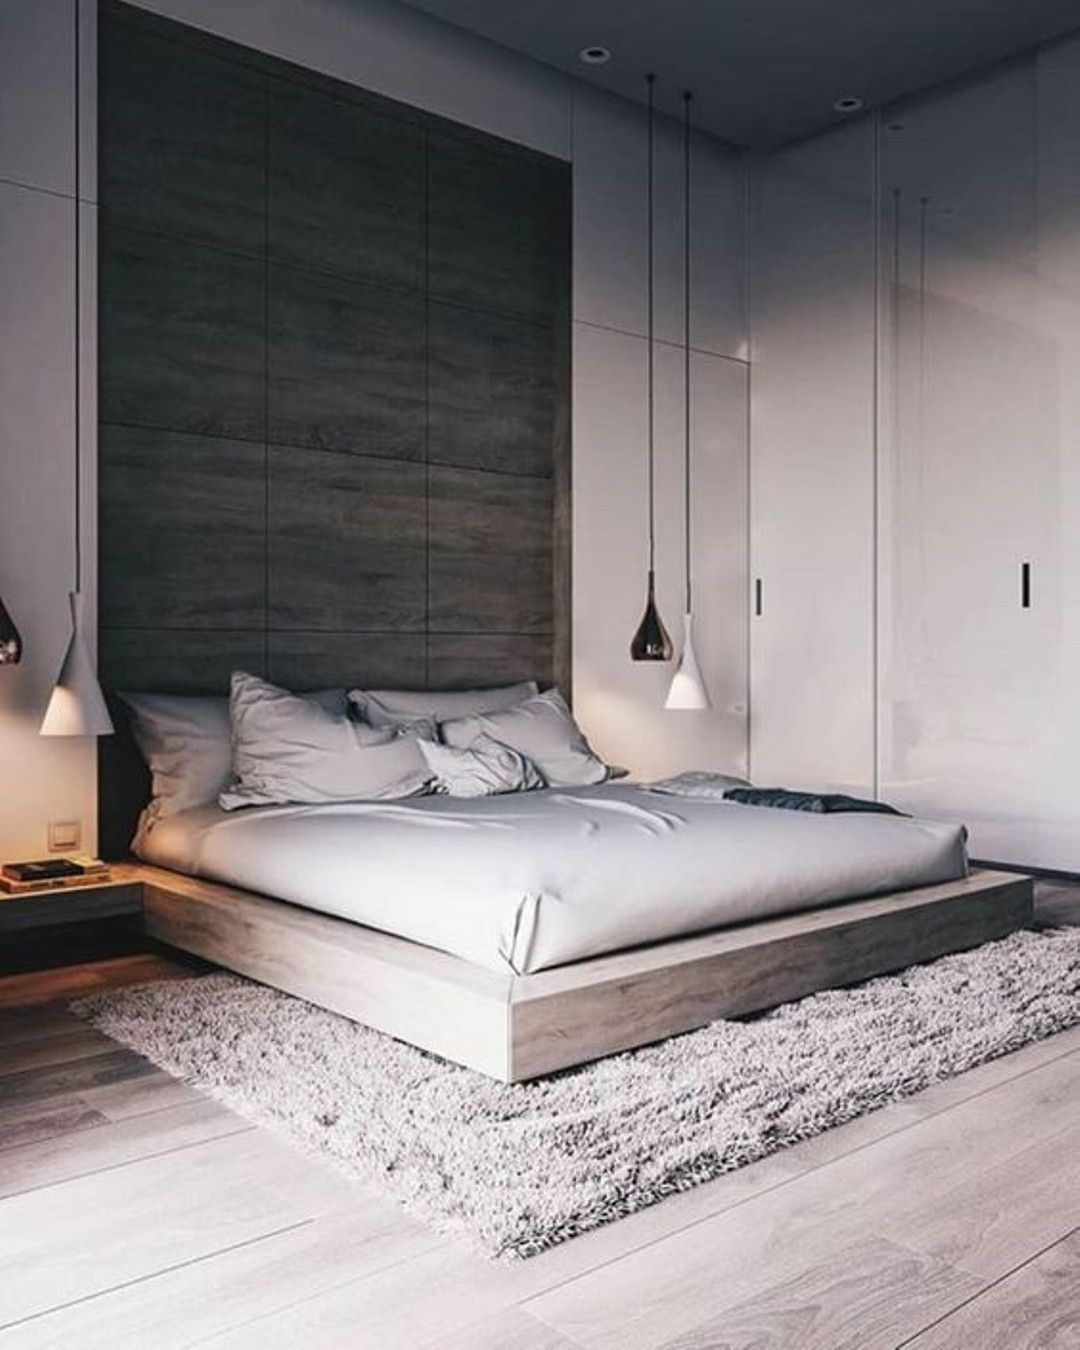 15 Modern & Minimalist Bedroom Interior Design Ideas